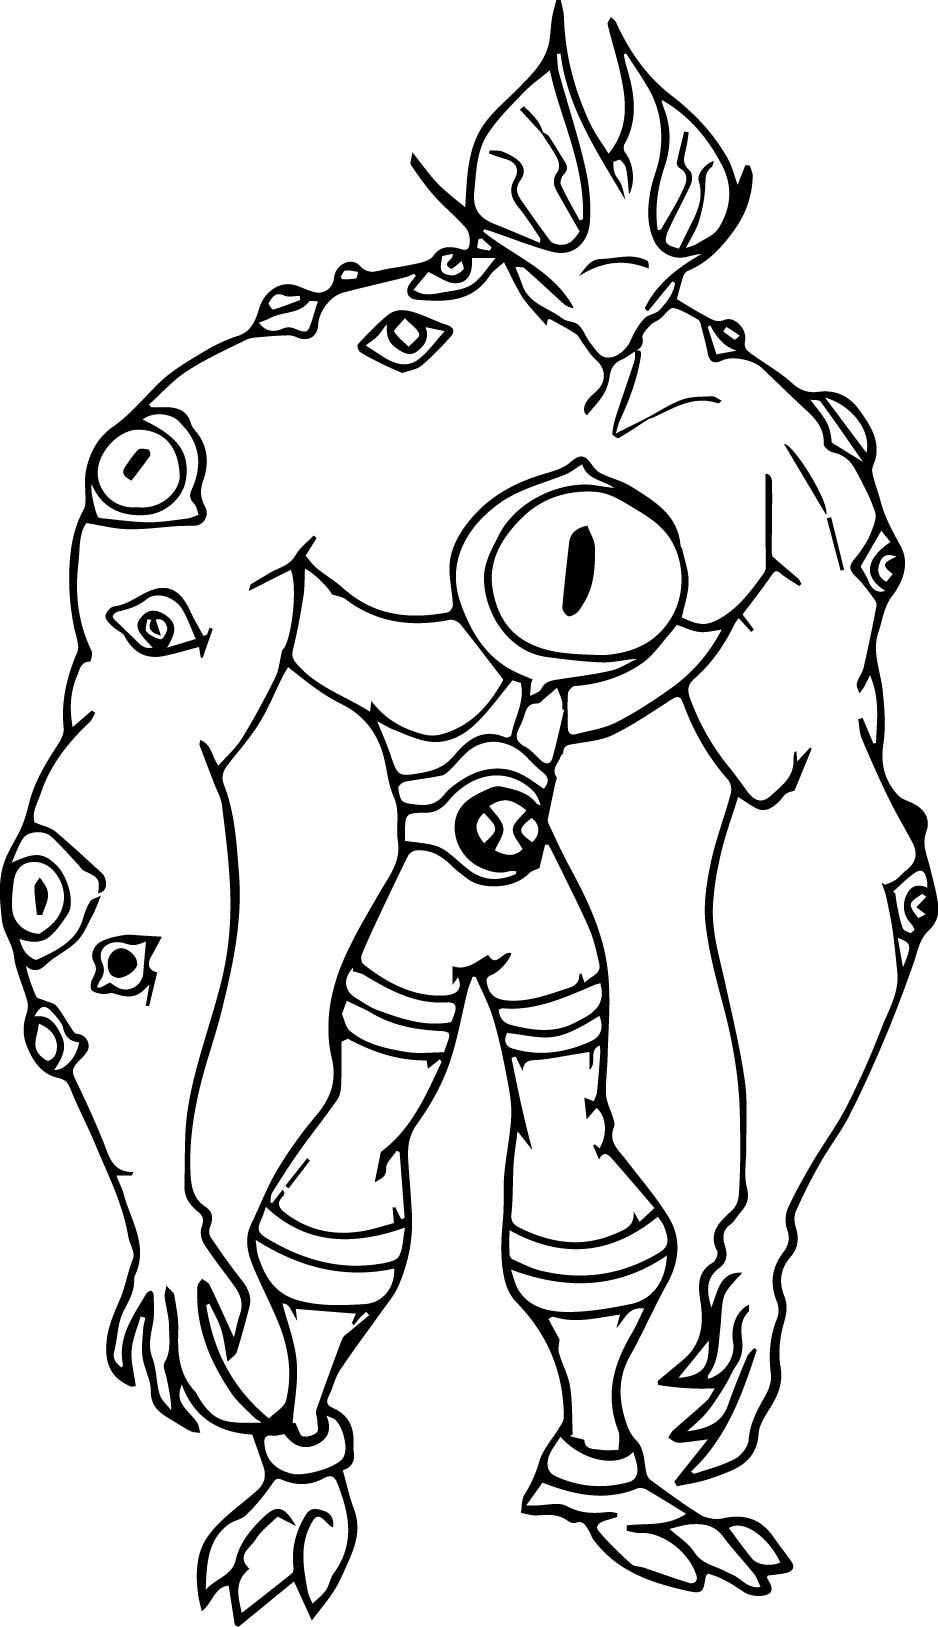 awesome ben 10 swampfire coloring pages mcoloring | Desenhos